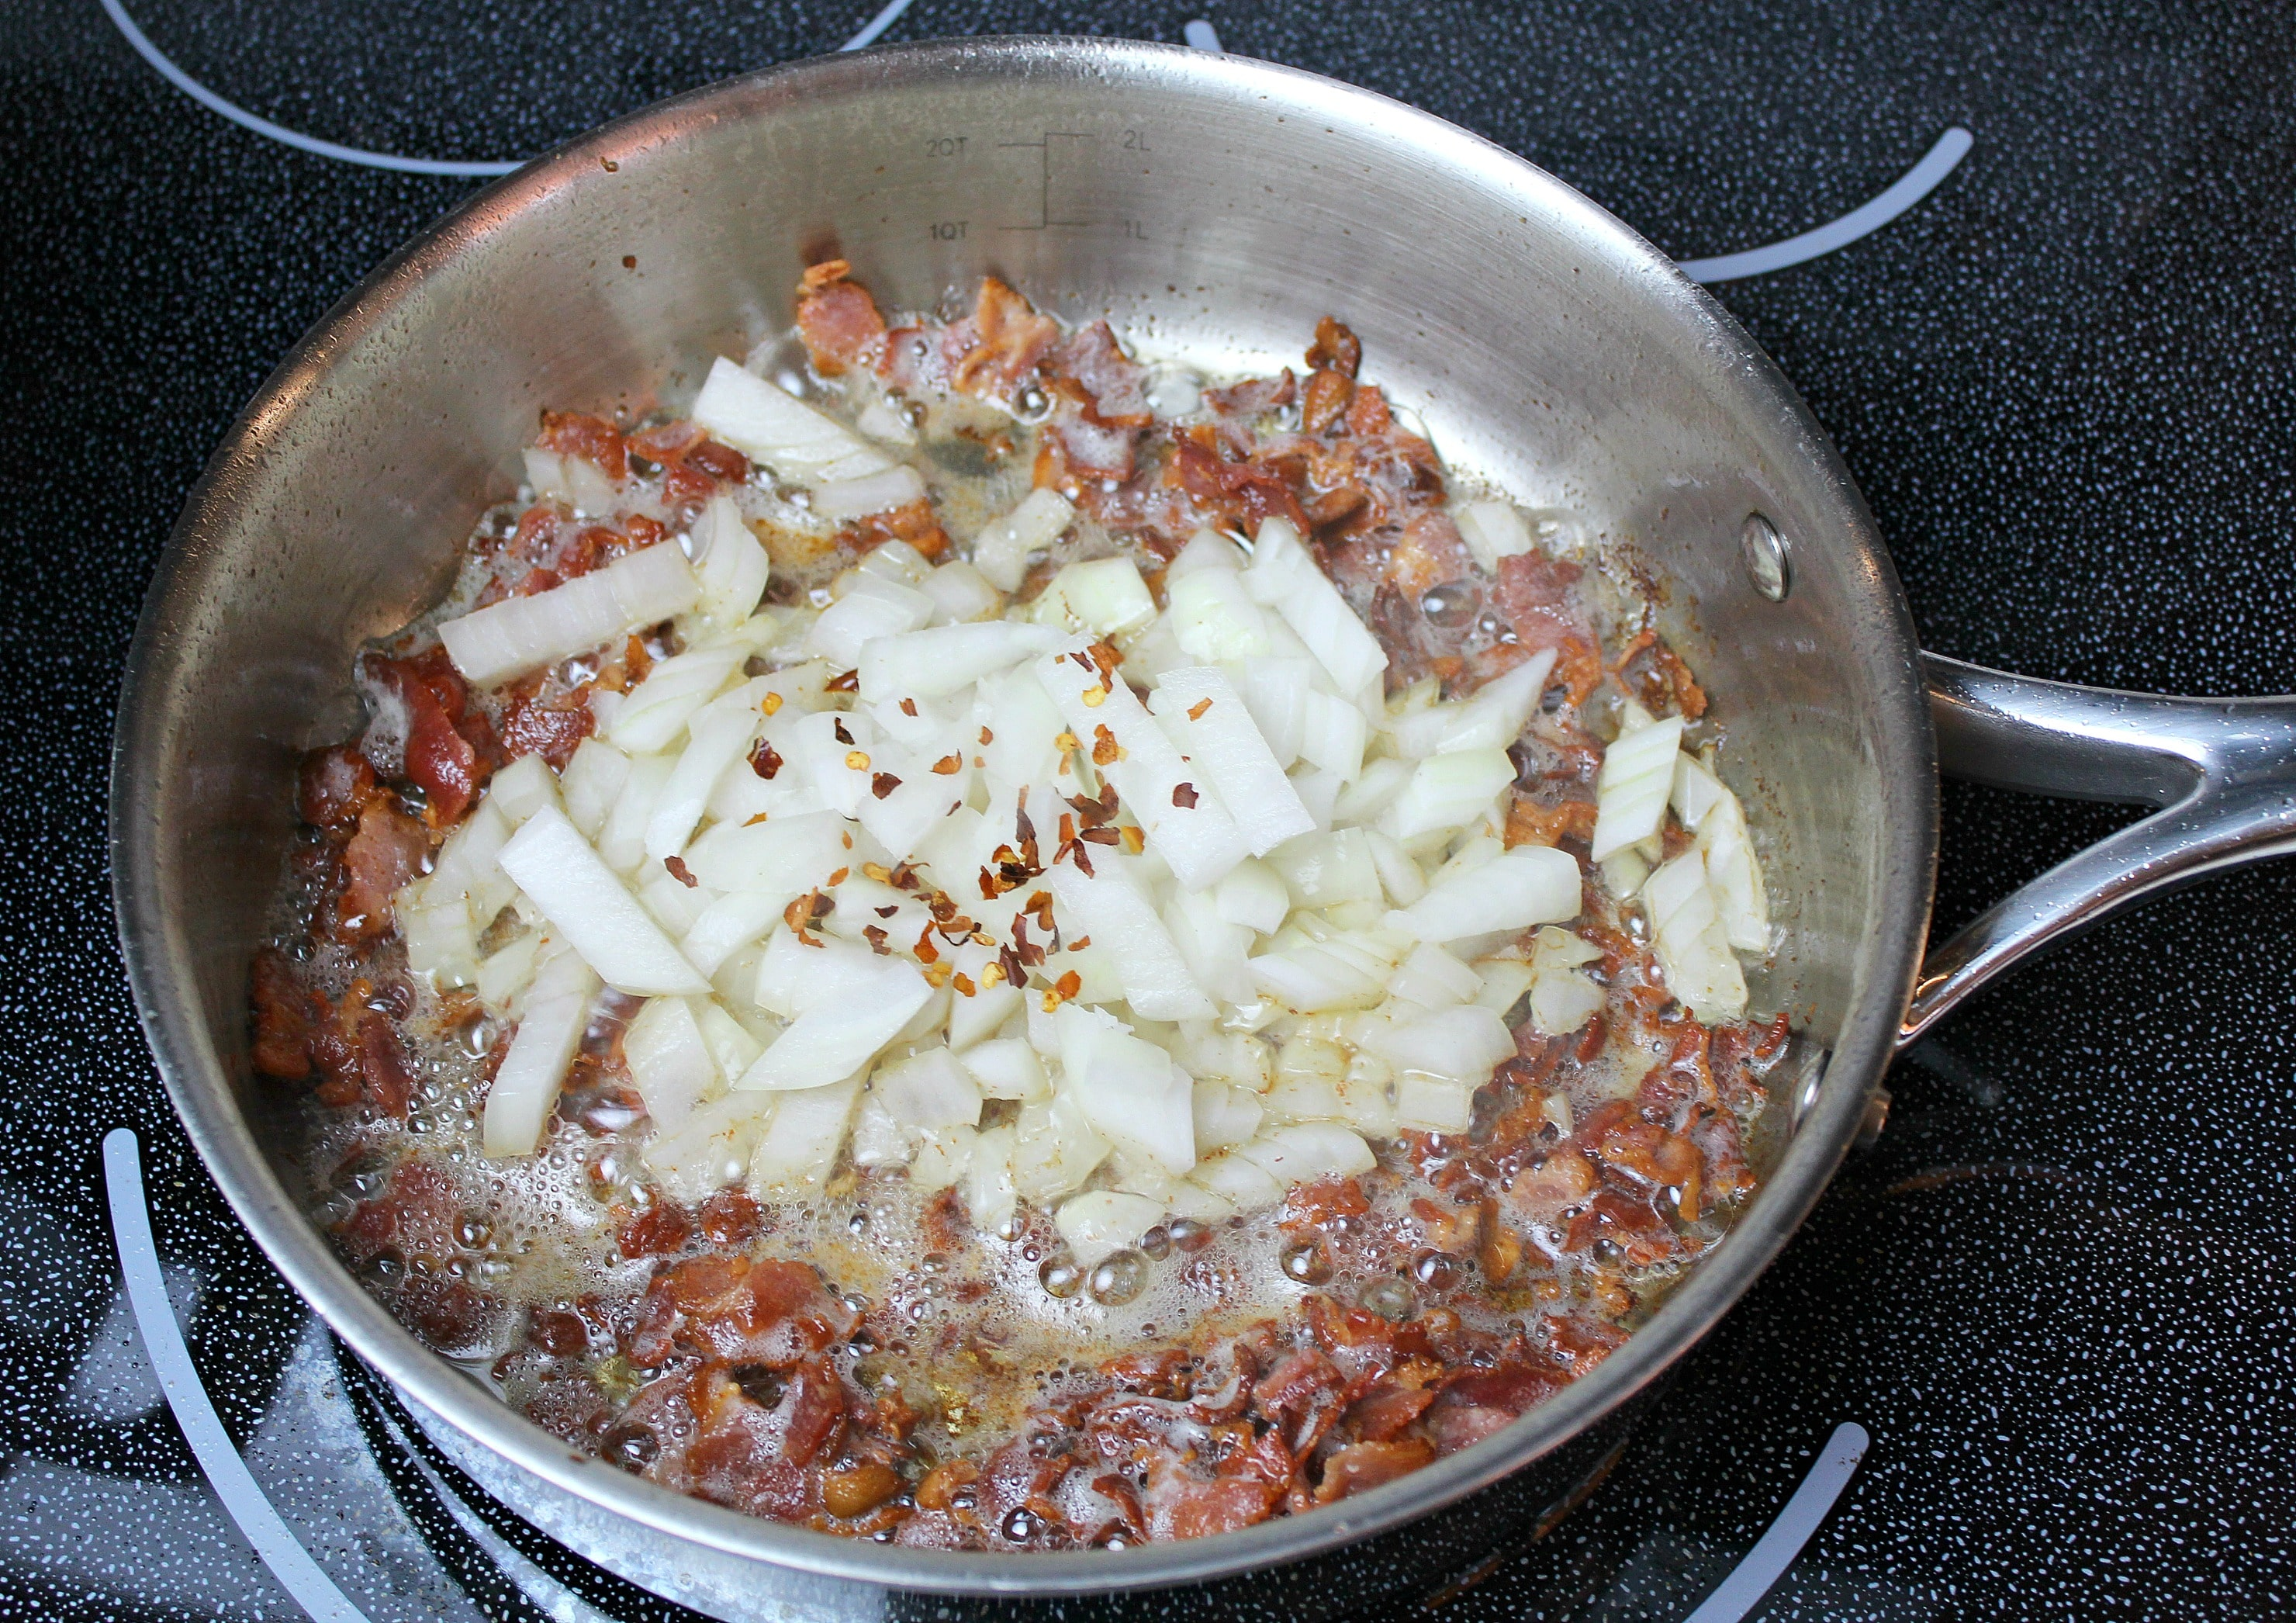 Saute onions with bacon and add red pepper flakes